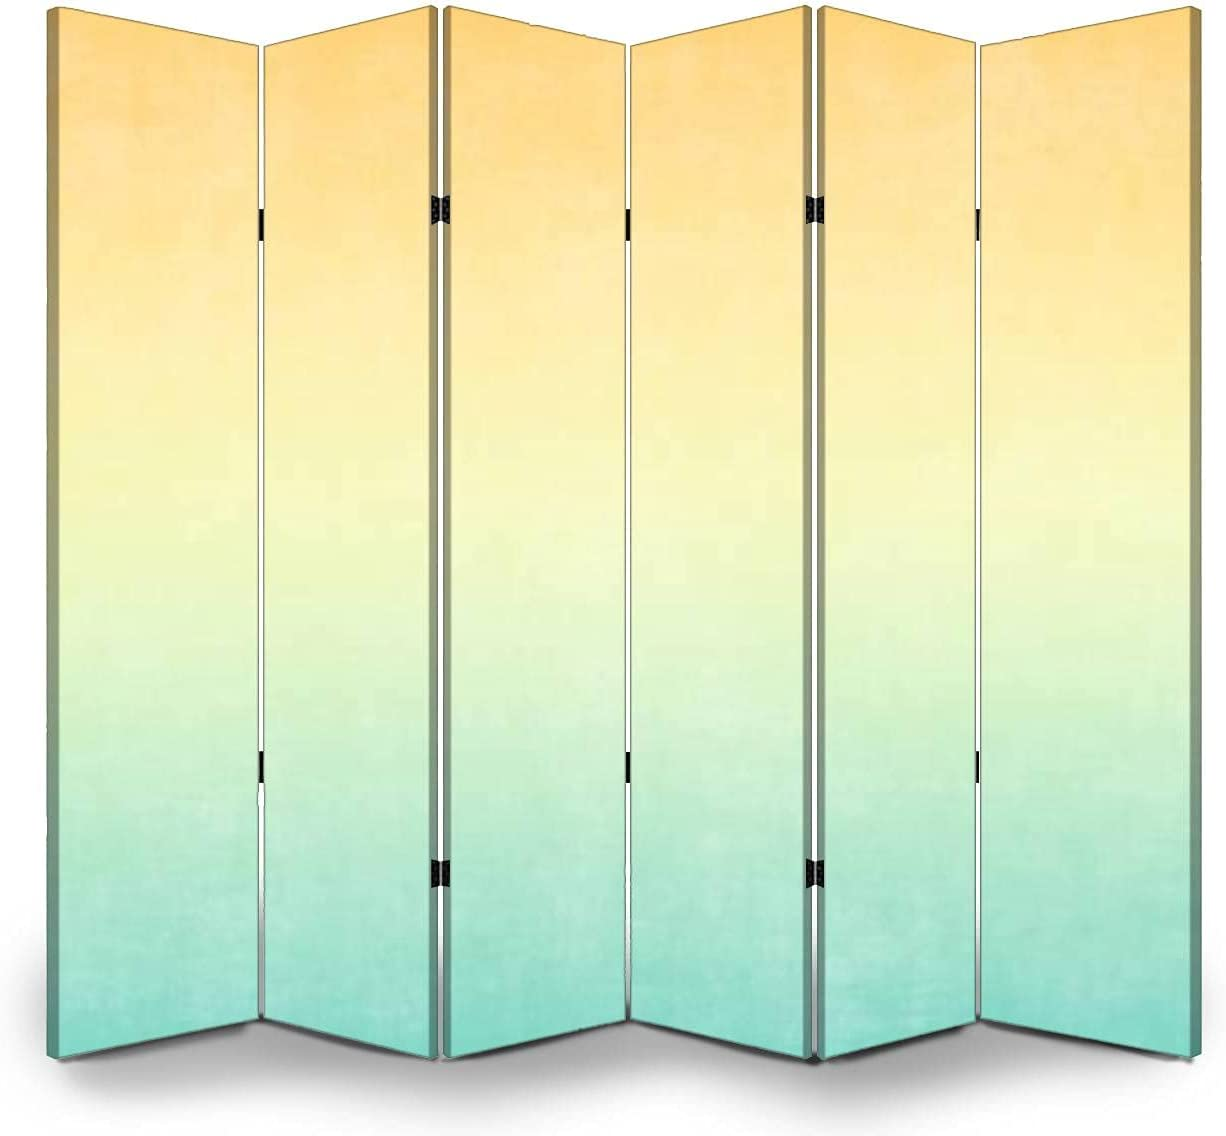 6 Panels Room Divider Max 45% OFF Screen Autumn Orange Partition Baltimore Mall Background